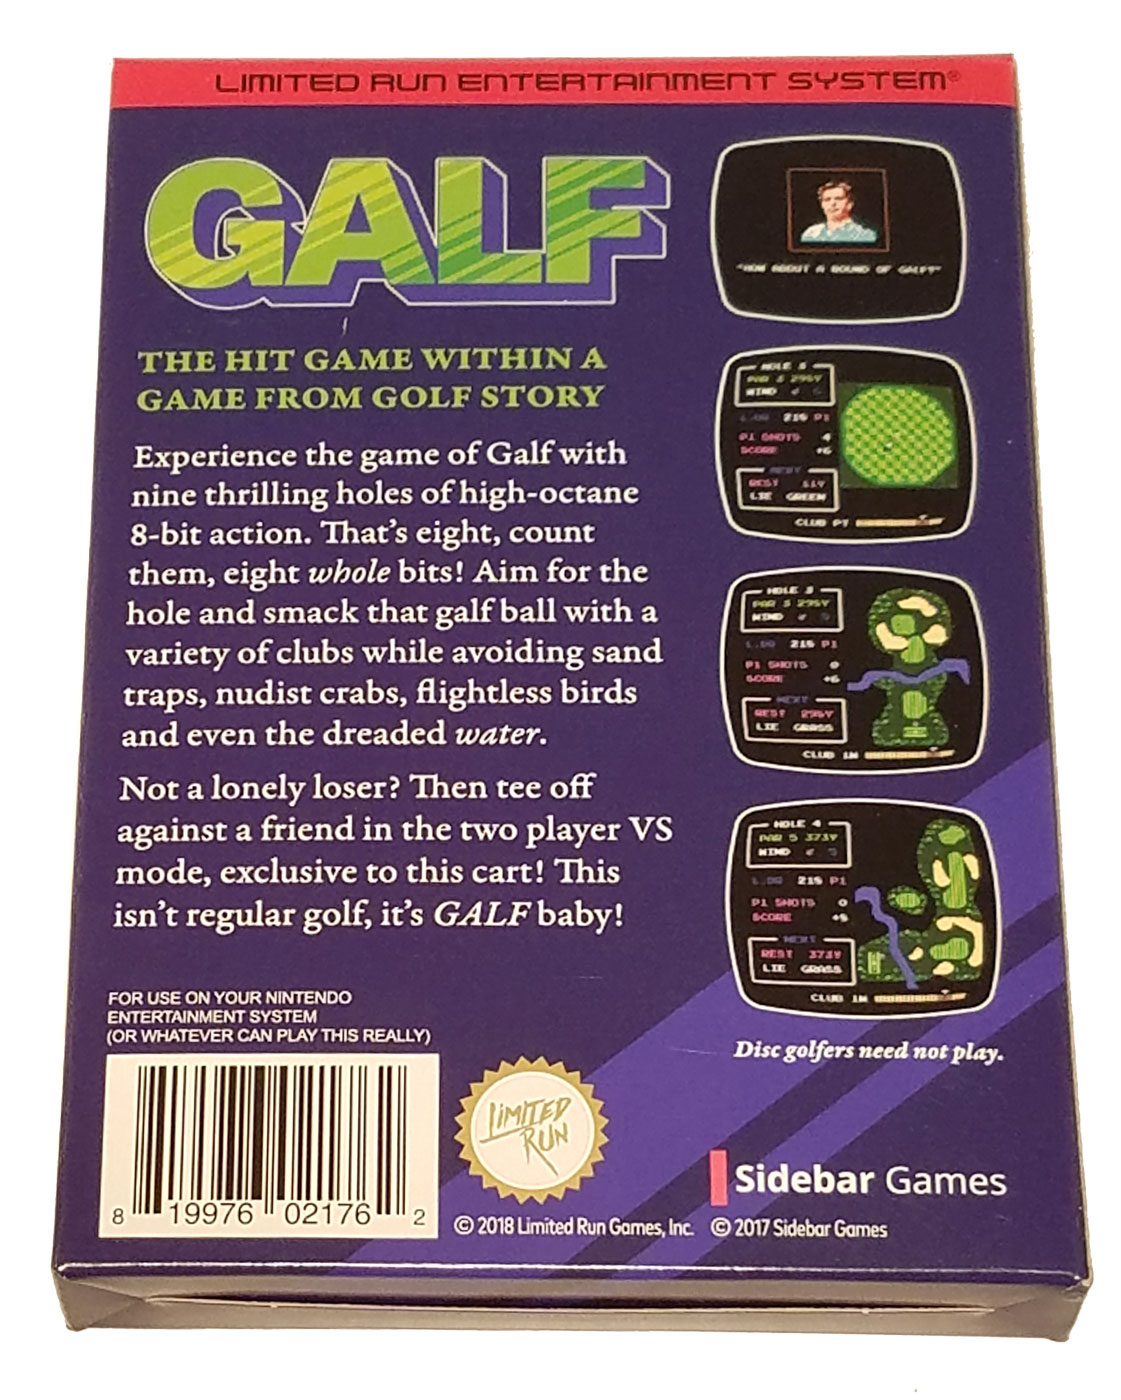 The back of the Galf box